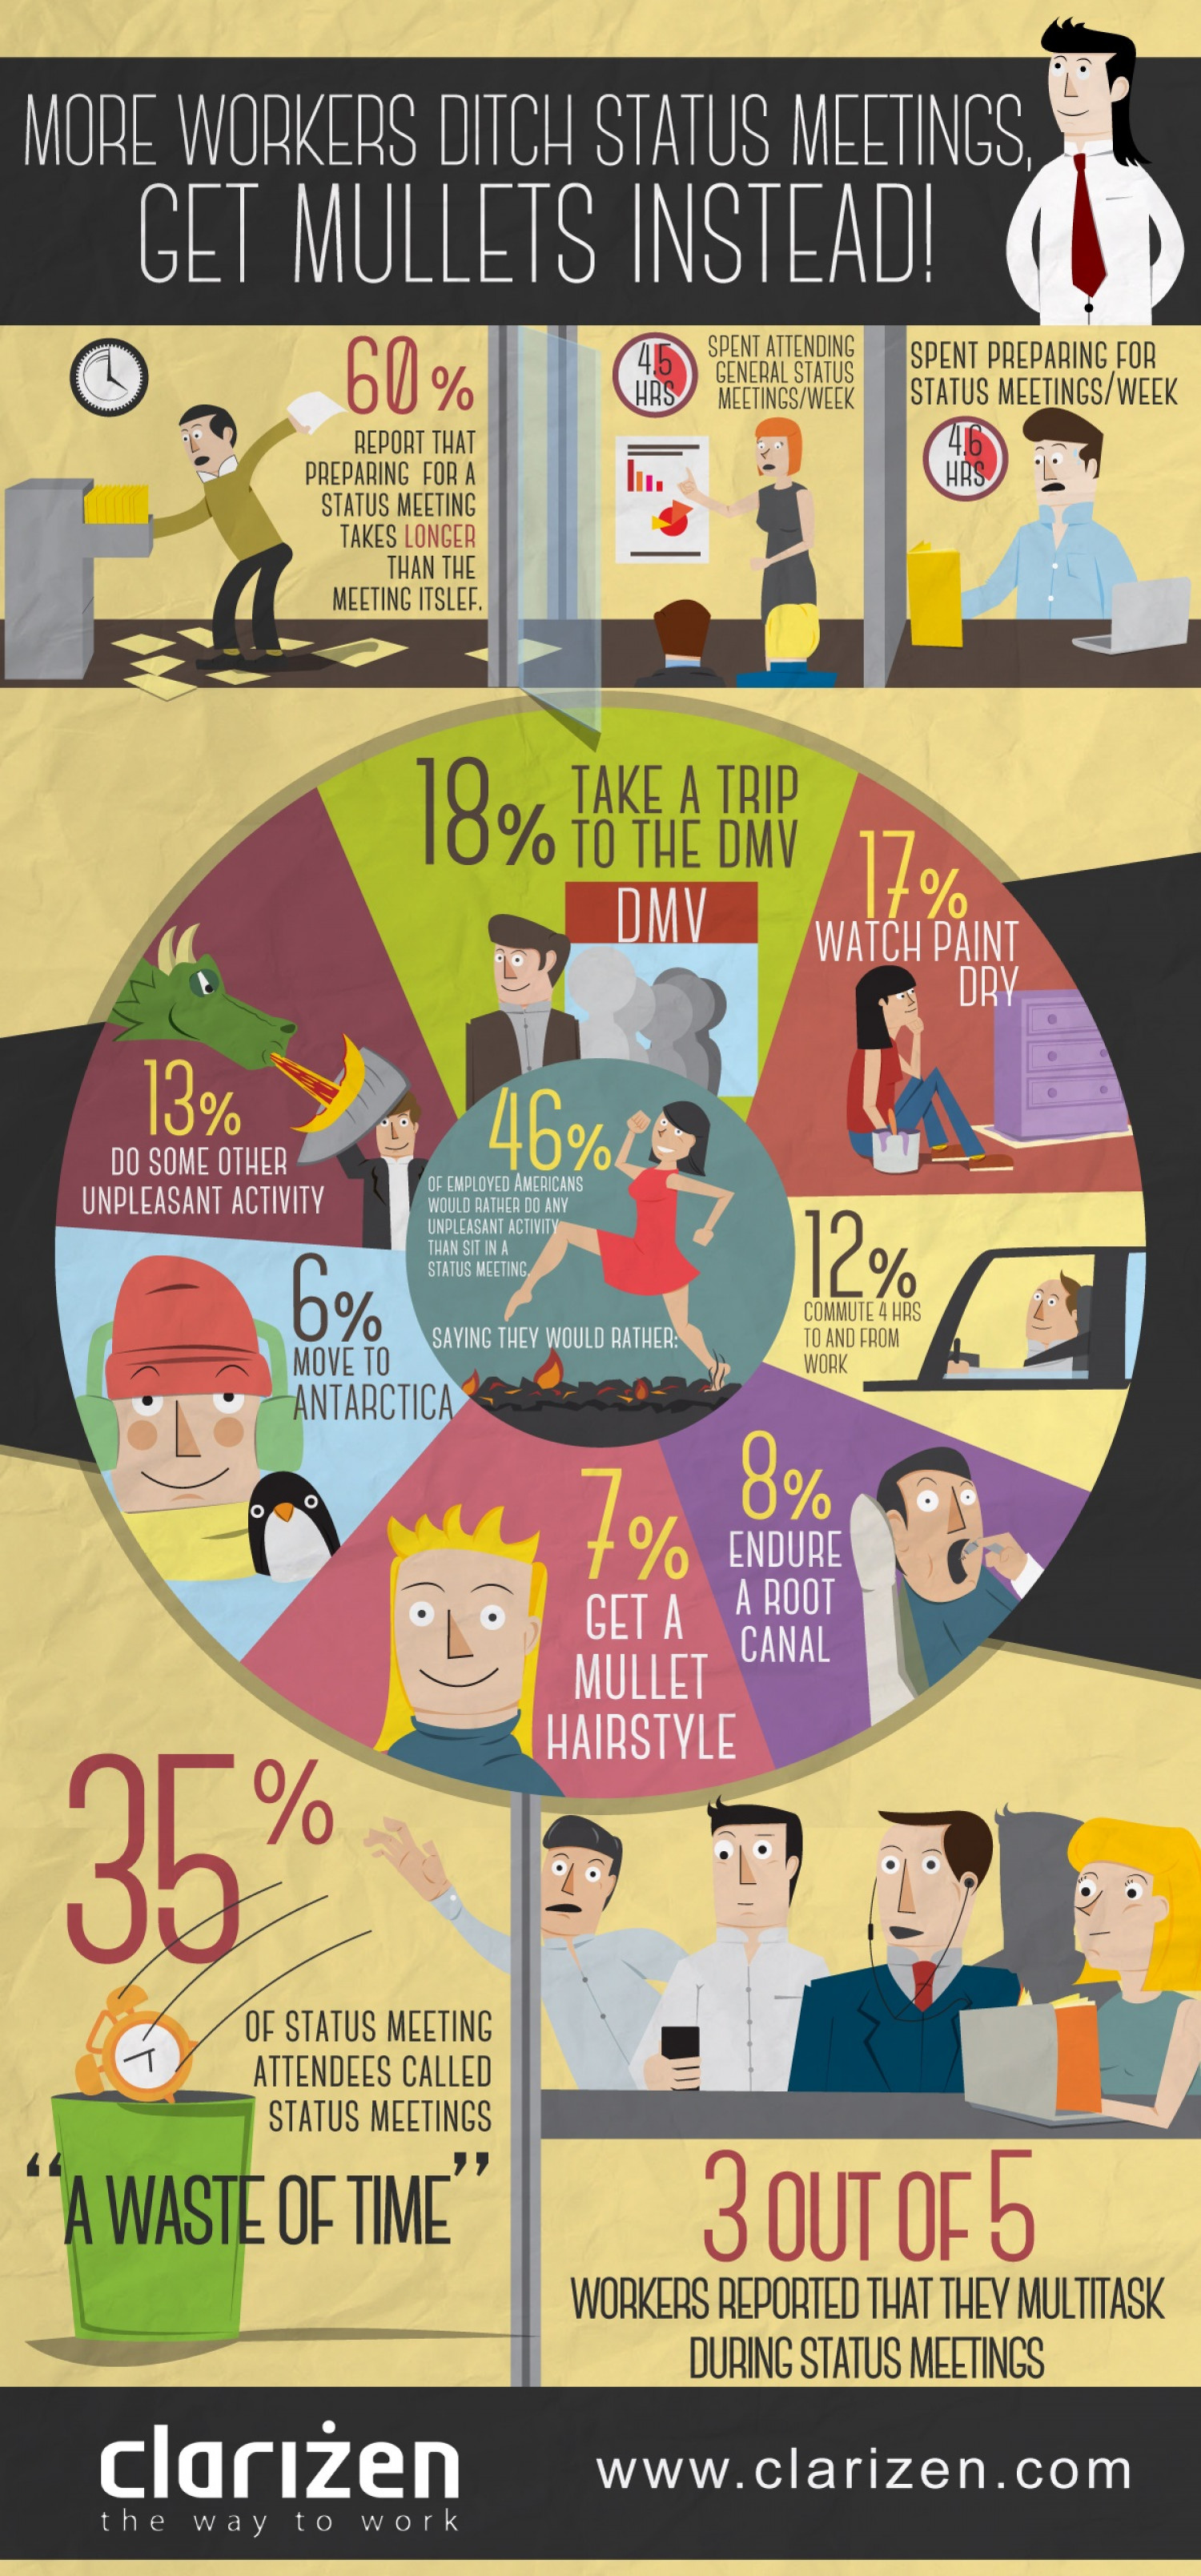 More Workers Ditch Status Meetings, Get Mullets Instead! Infographic